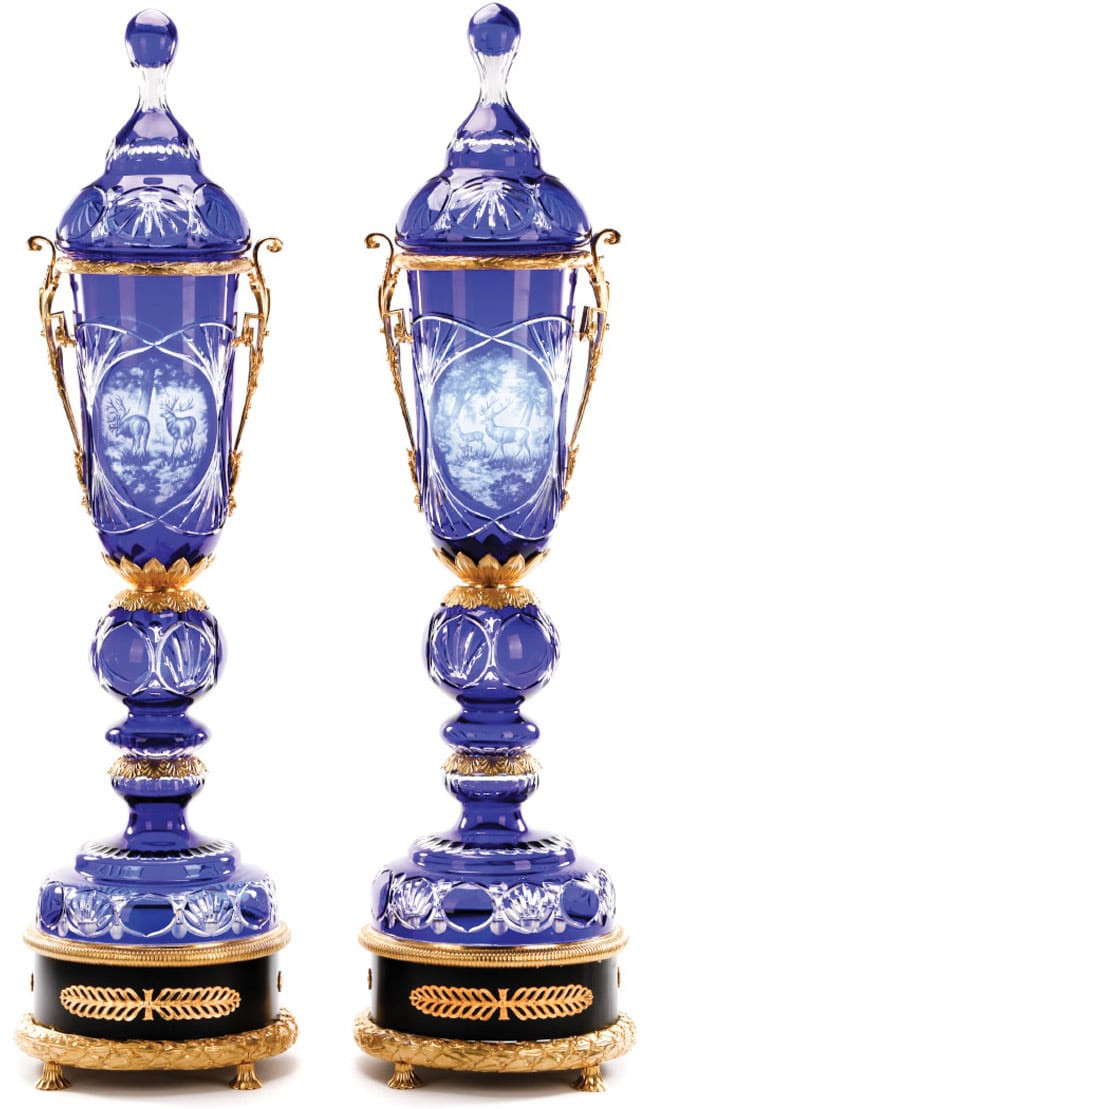 baccarat crystal vase prices of glass crystal with regard to palatial dore bronze mounted crystal floor urns ahlers ogletree auction gallery